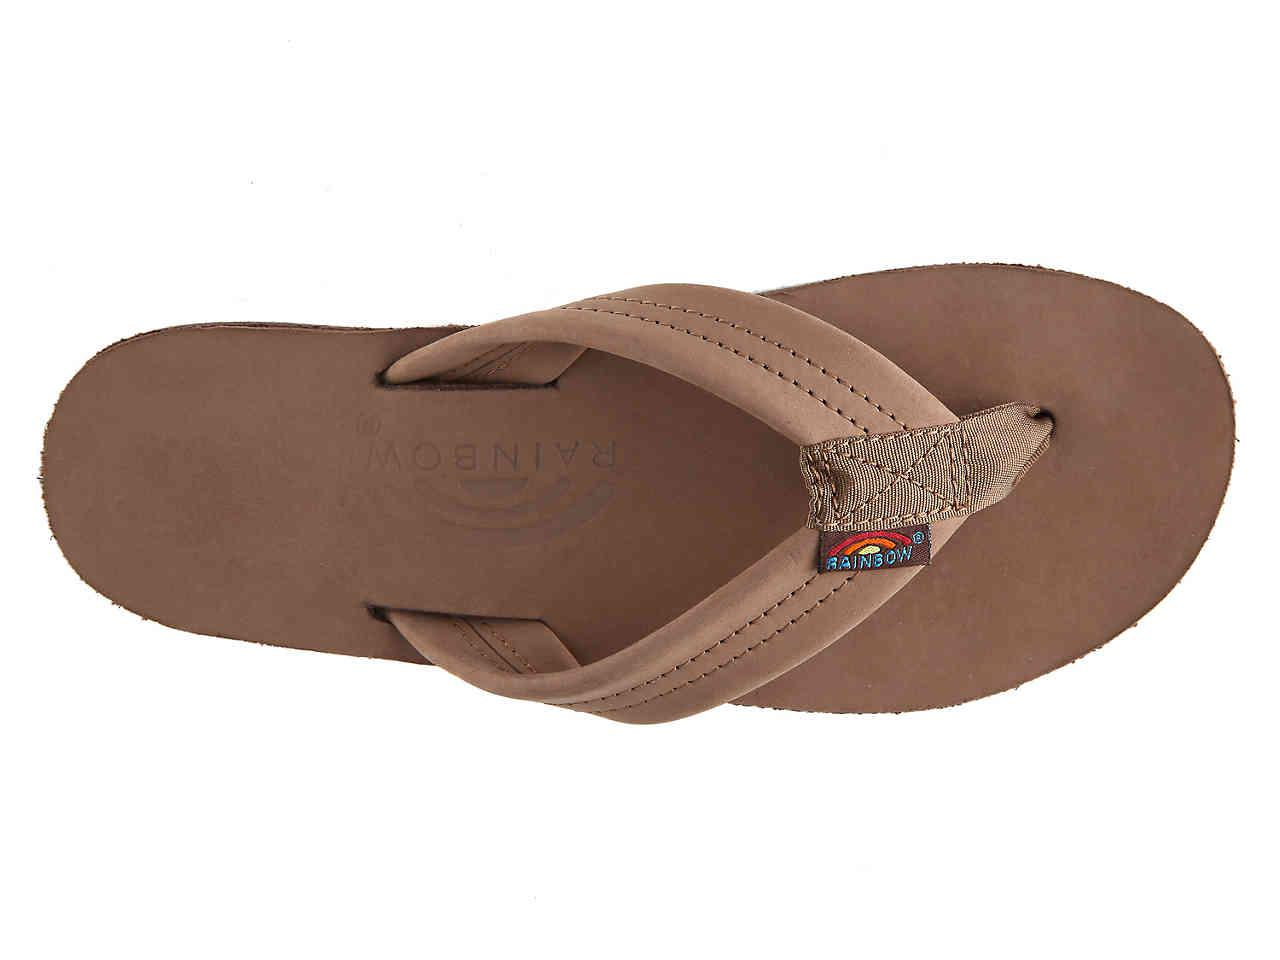 e0b825bbbff048 Rainbow Sandals - Brown Thick Strap Flip Flop - Lyst. View fullscreen